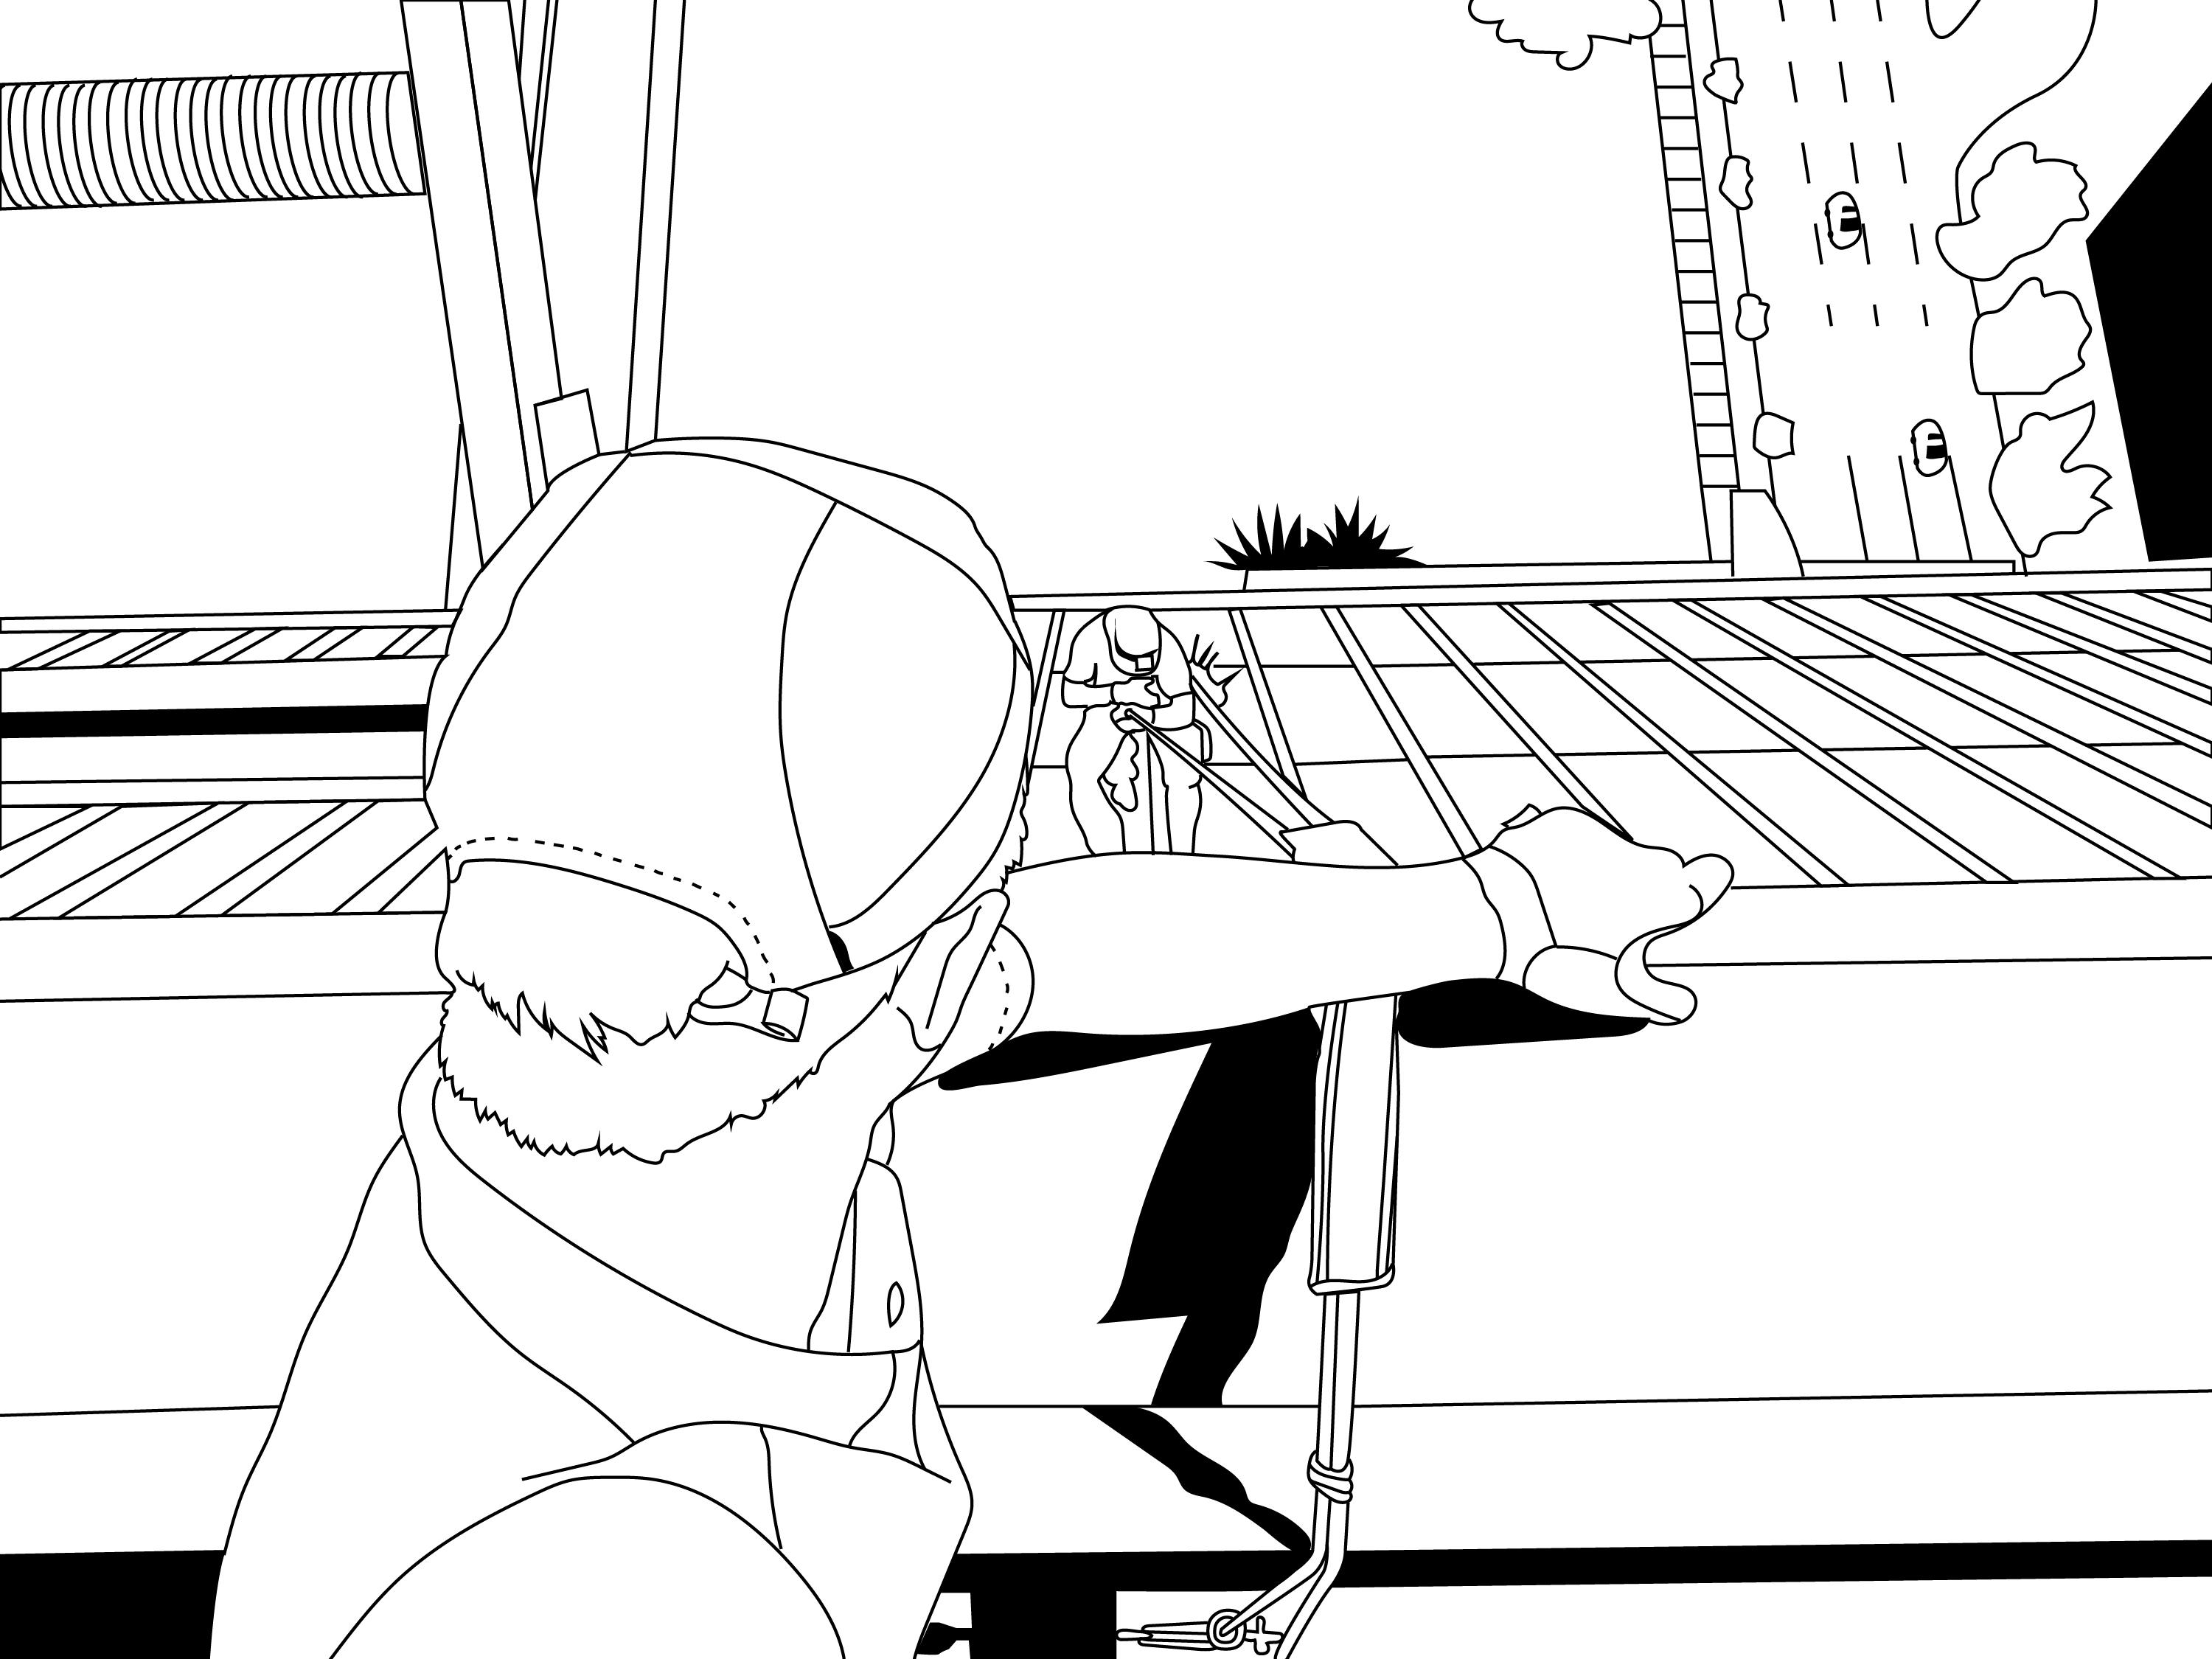 Rope Access Coloring Page